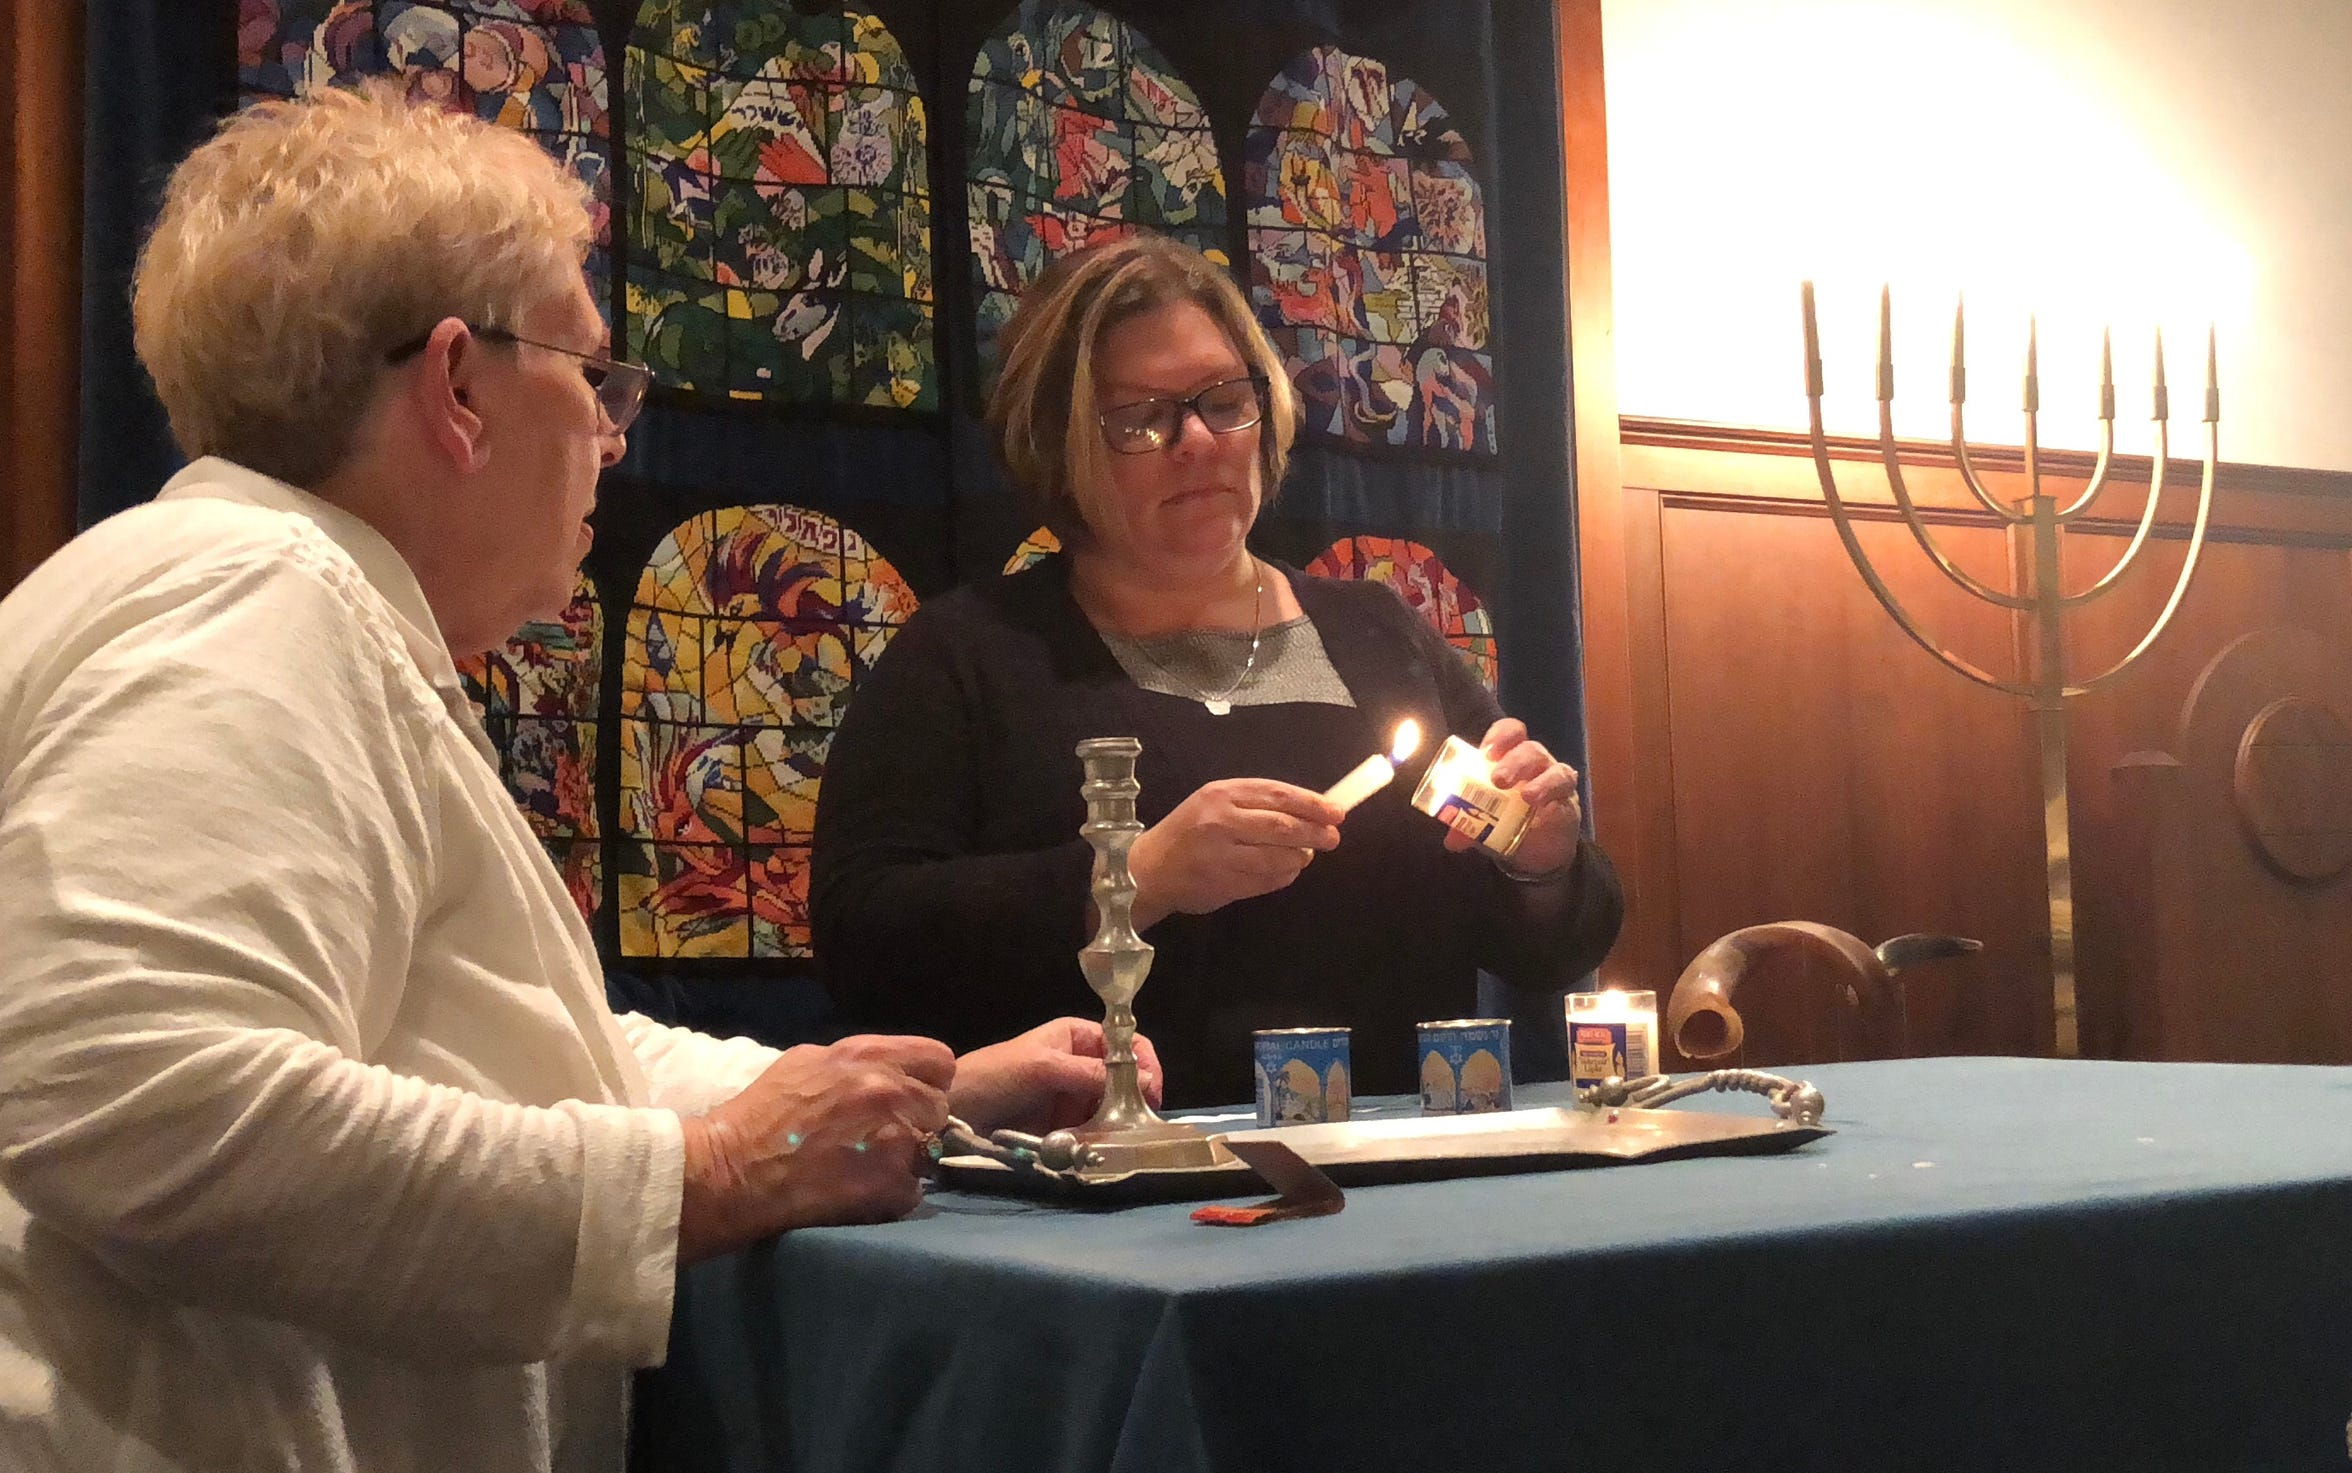 Jessica Doubell (right), Chambersburg, lights a candle in memory of a victim during a memorial service at Congregation Sons of Israel in Chambersburg the evening of Tuesday, Oct. 30. The event was held to honor 11 Jewish people who were killed in a shooting in Pittsburgh a few days earlier. Also pictured: Lynne Newman (left), a member of the congregation.